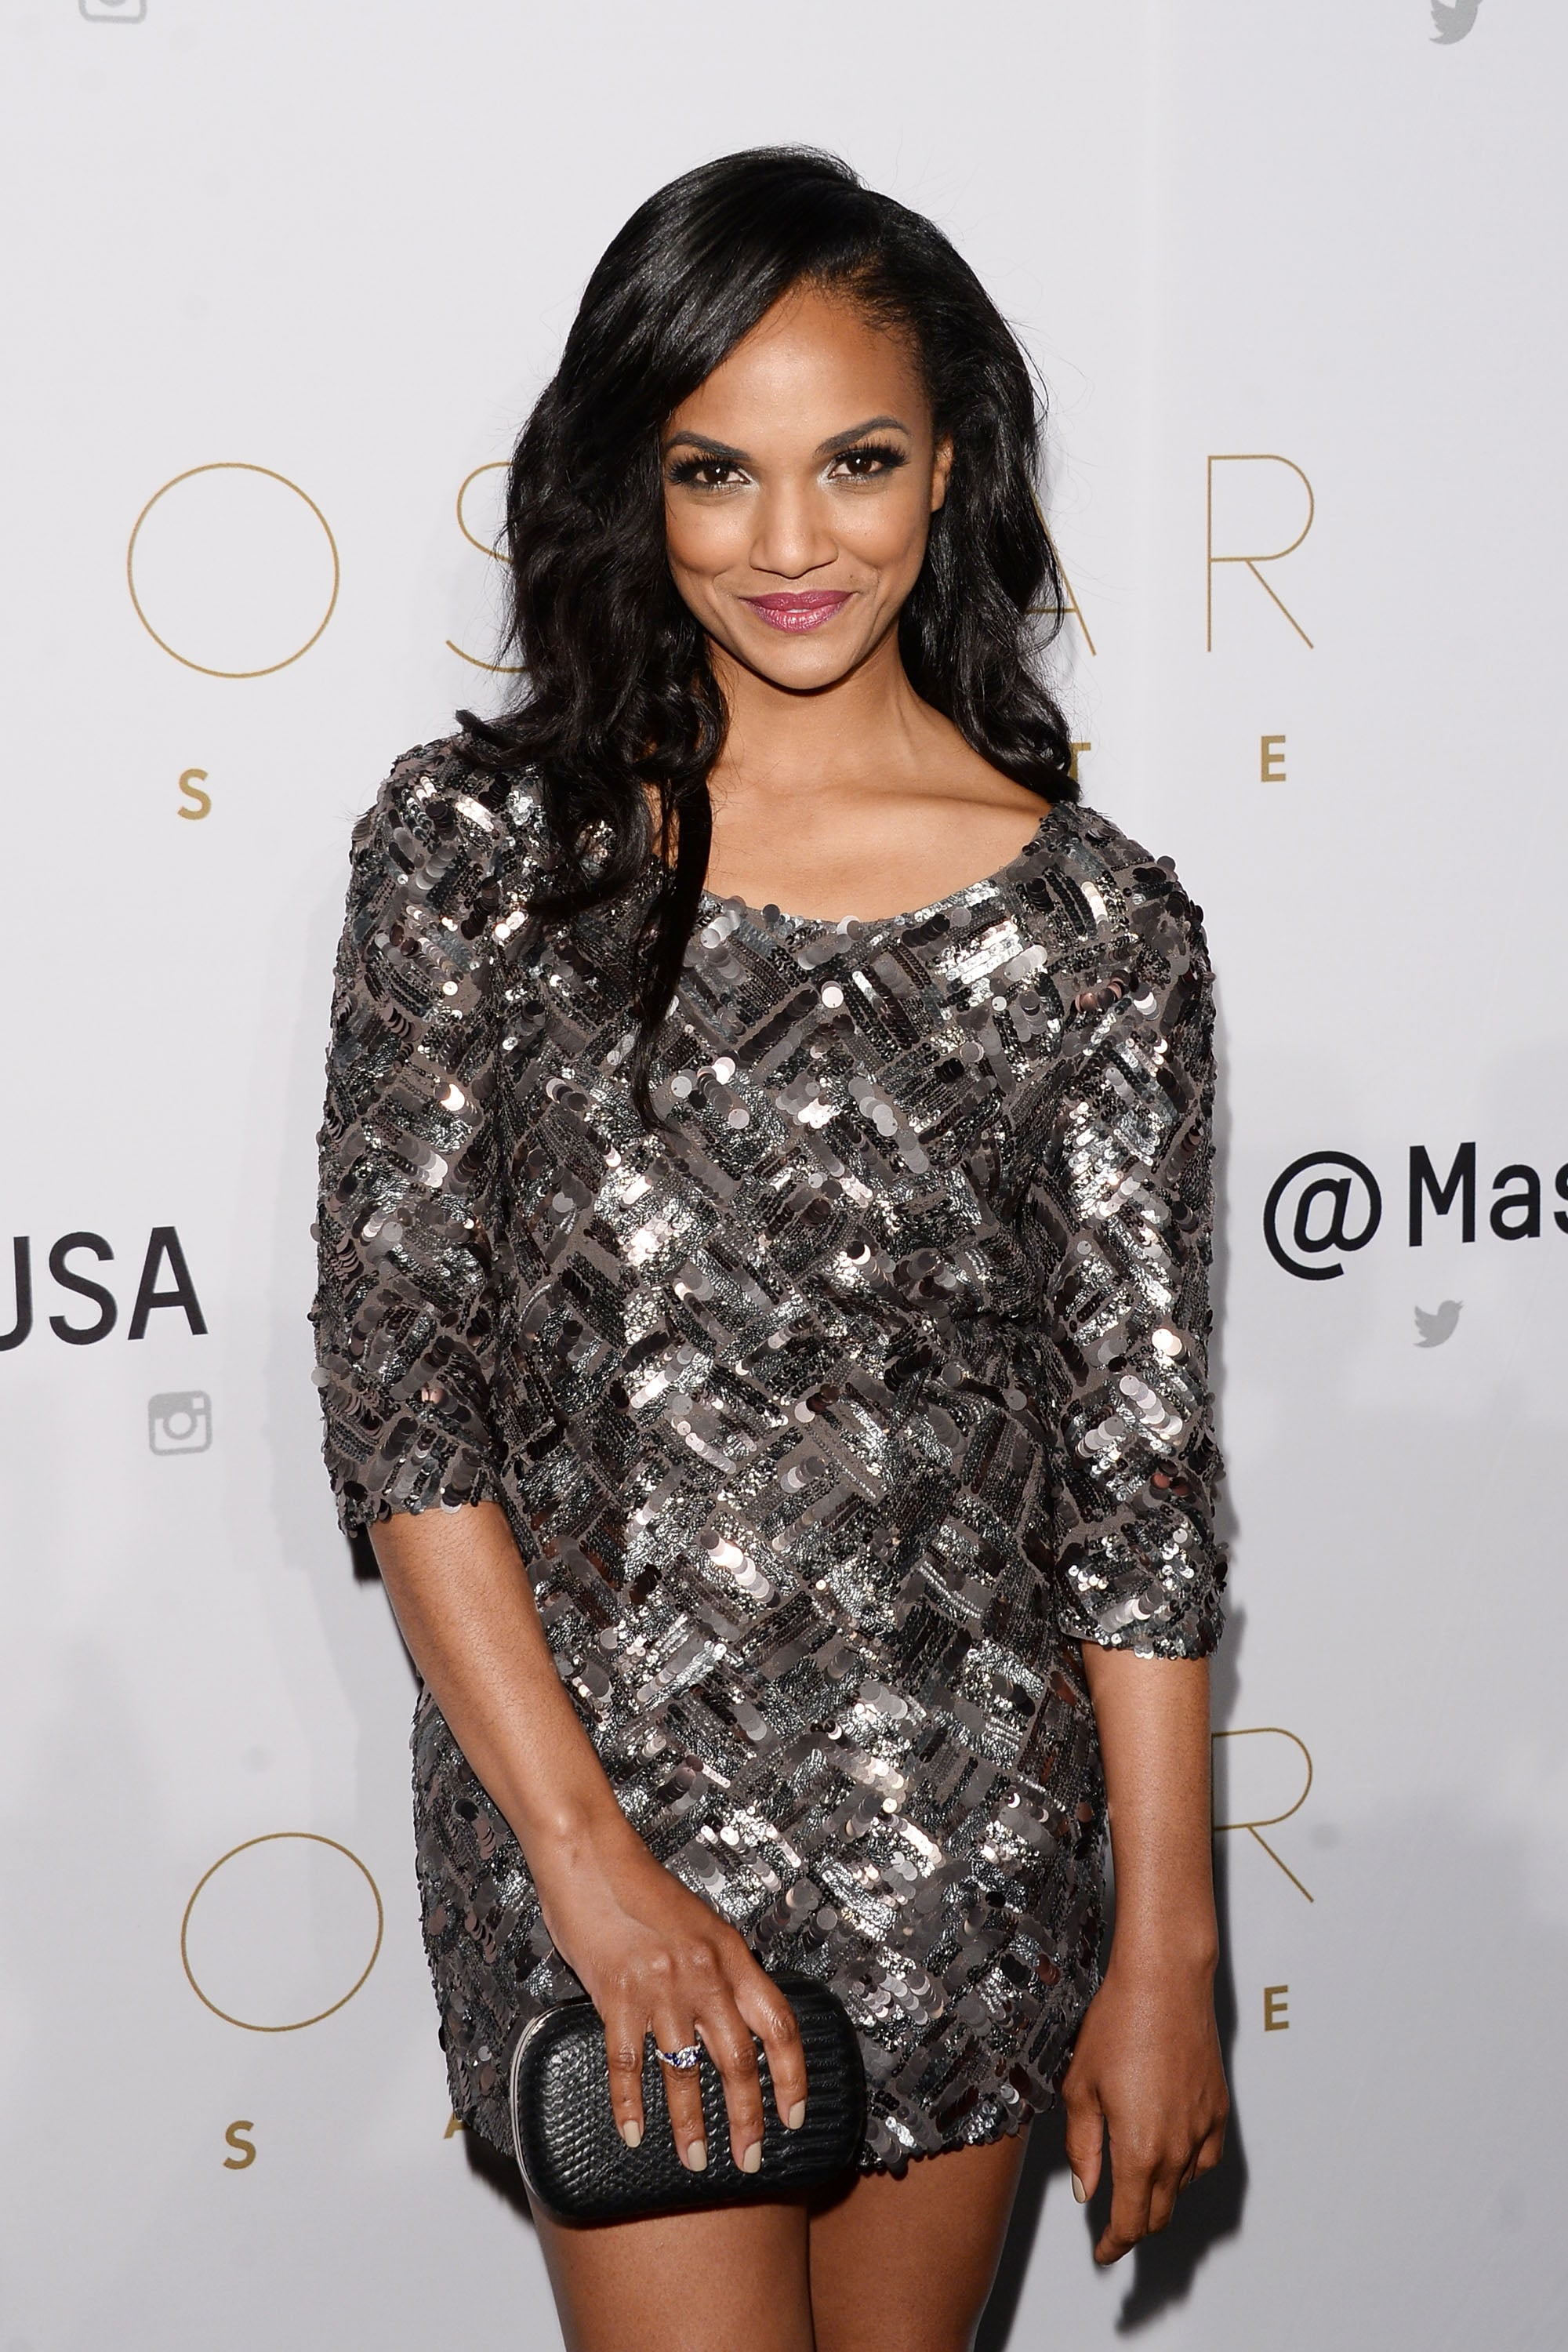 Mekia Cox Once Upon A Time Meet The New And Returning Cast For Images, Photos, Reviews